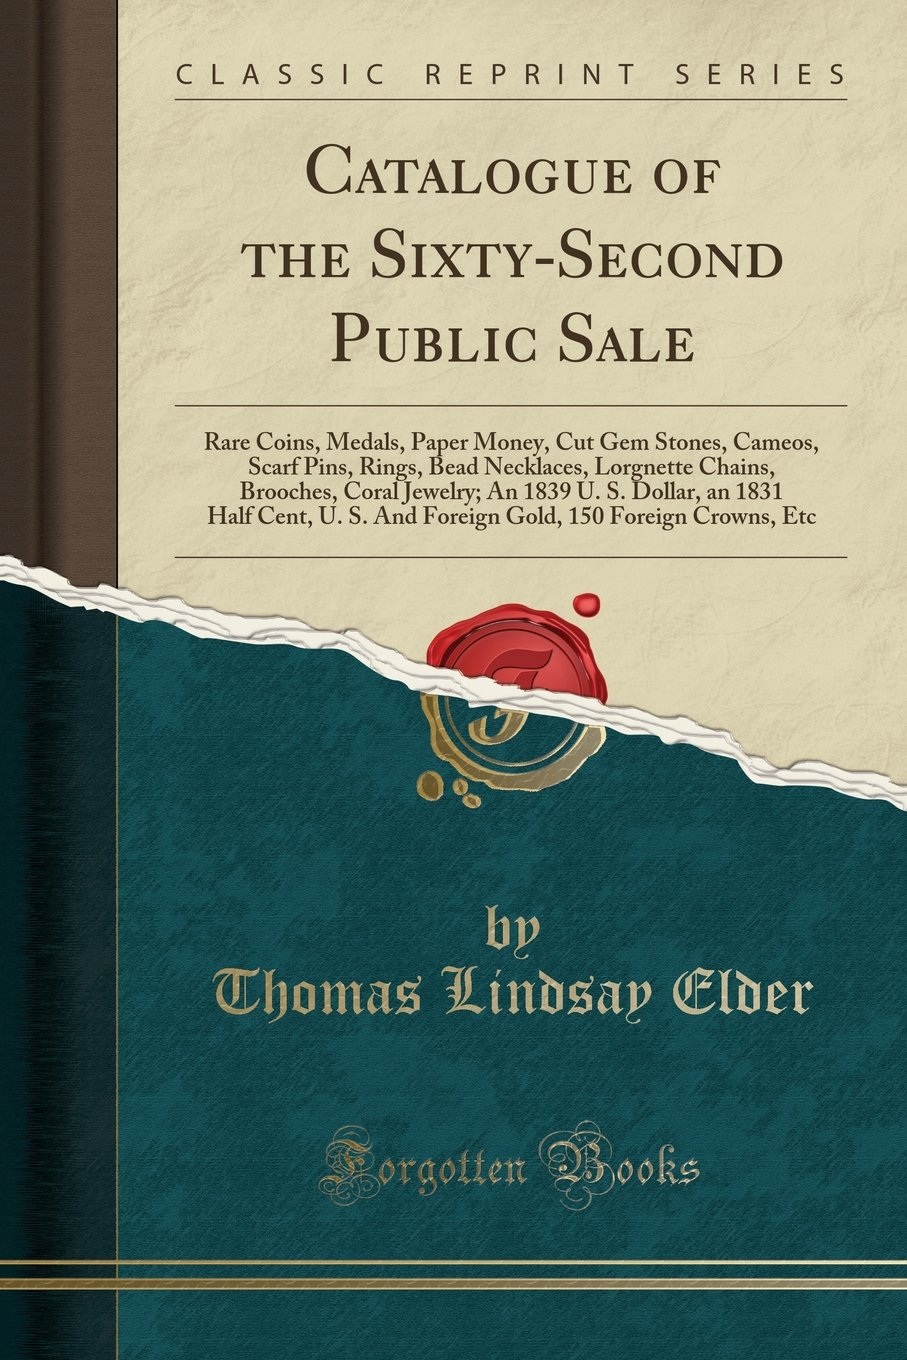 Catalogue of the Sixty-Second Public Sale: Rare Coins, Medals, Paper Money, Cut Gem Stones, Cameos, Scarf Pins, Rings, Bead Necklaces, Lorgnette ... Cent, U. S. And Foreign Gold, 150 Foreign ebook